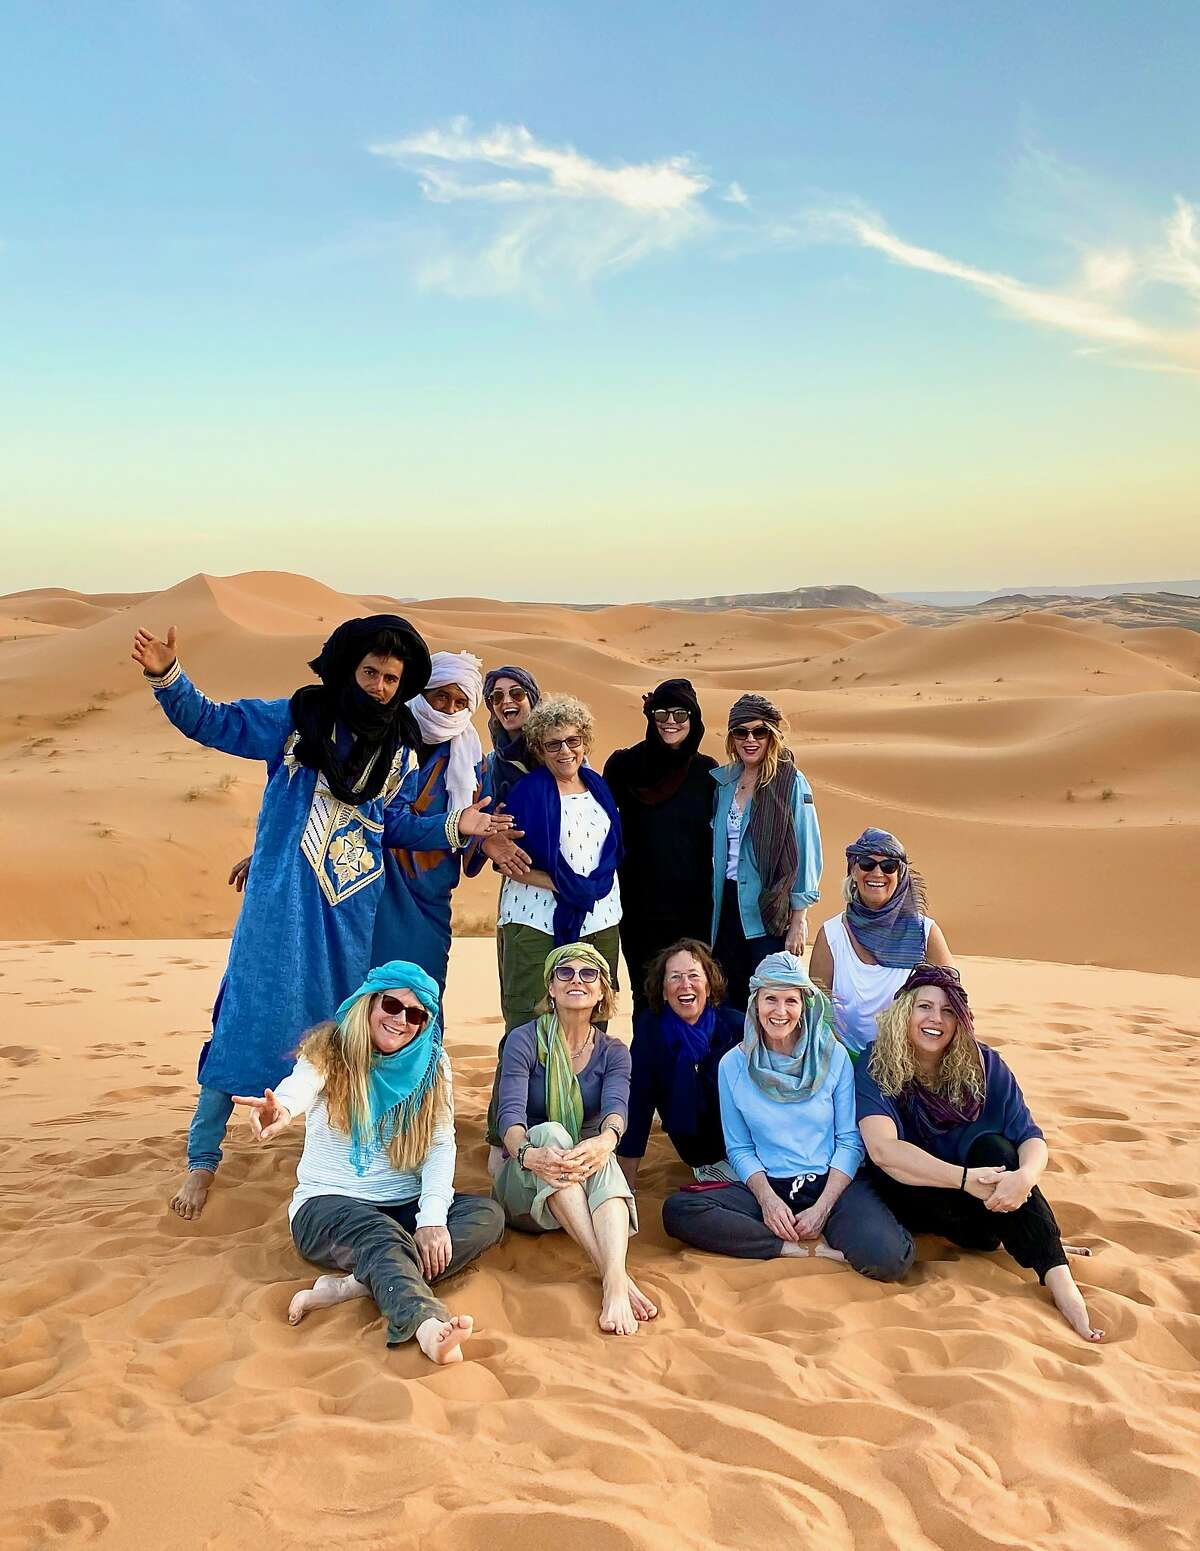 Tessa Matisis Smith and her 10 friends enjoy Morocco the country locked its borders over coronavirus fears.